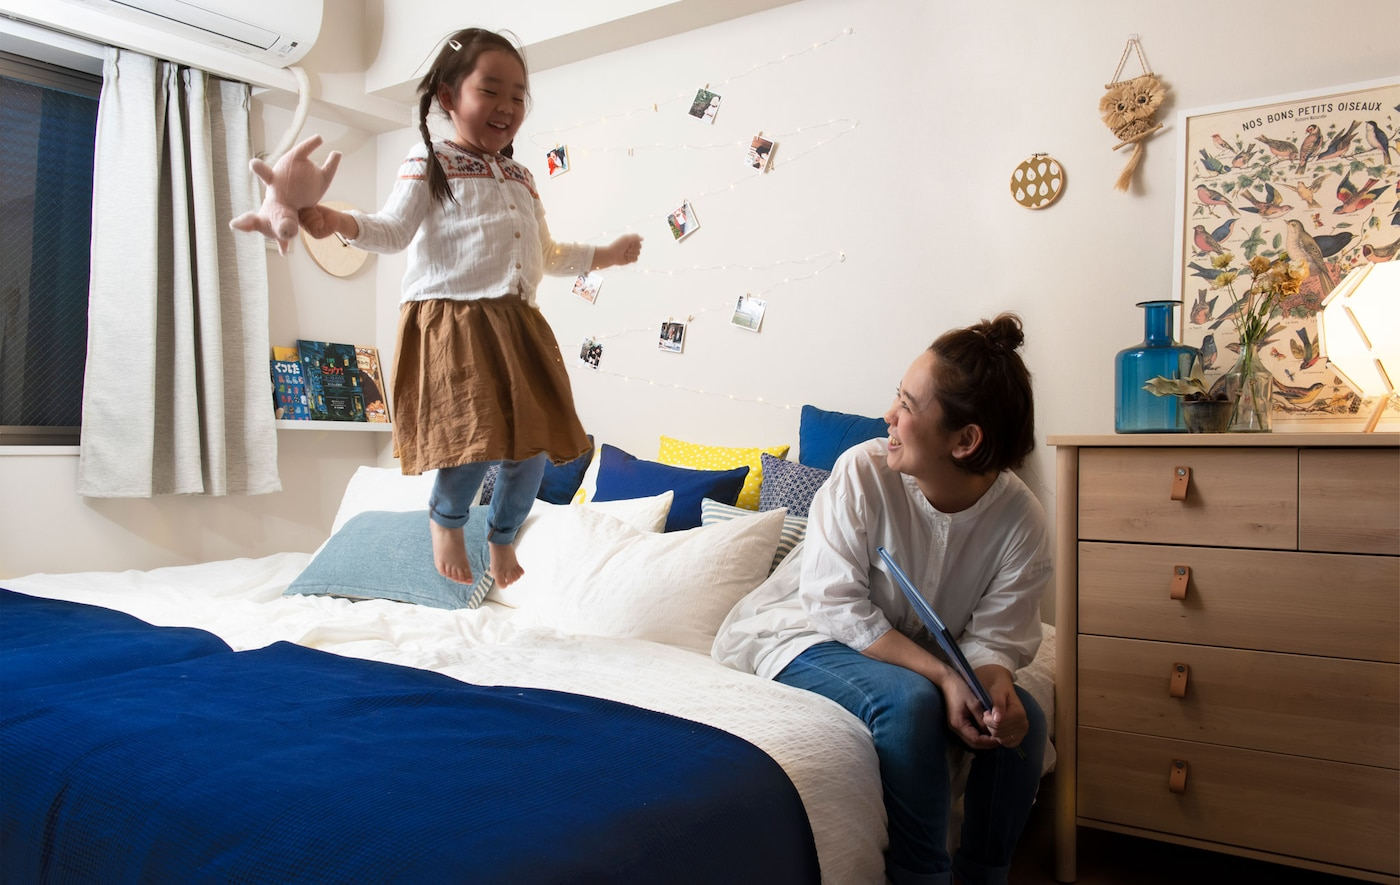 A woman sitting and a child standing on a big bed in a white bedroom with a wall-mounted bookshelf.